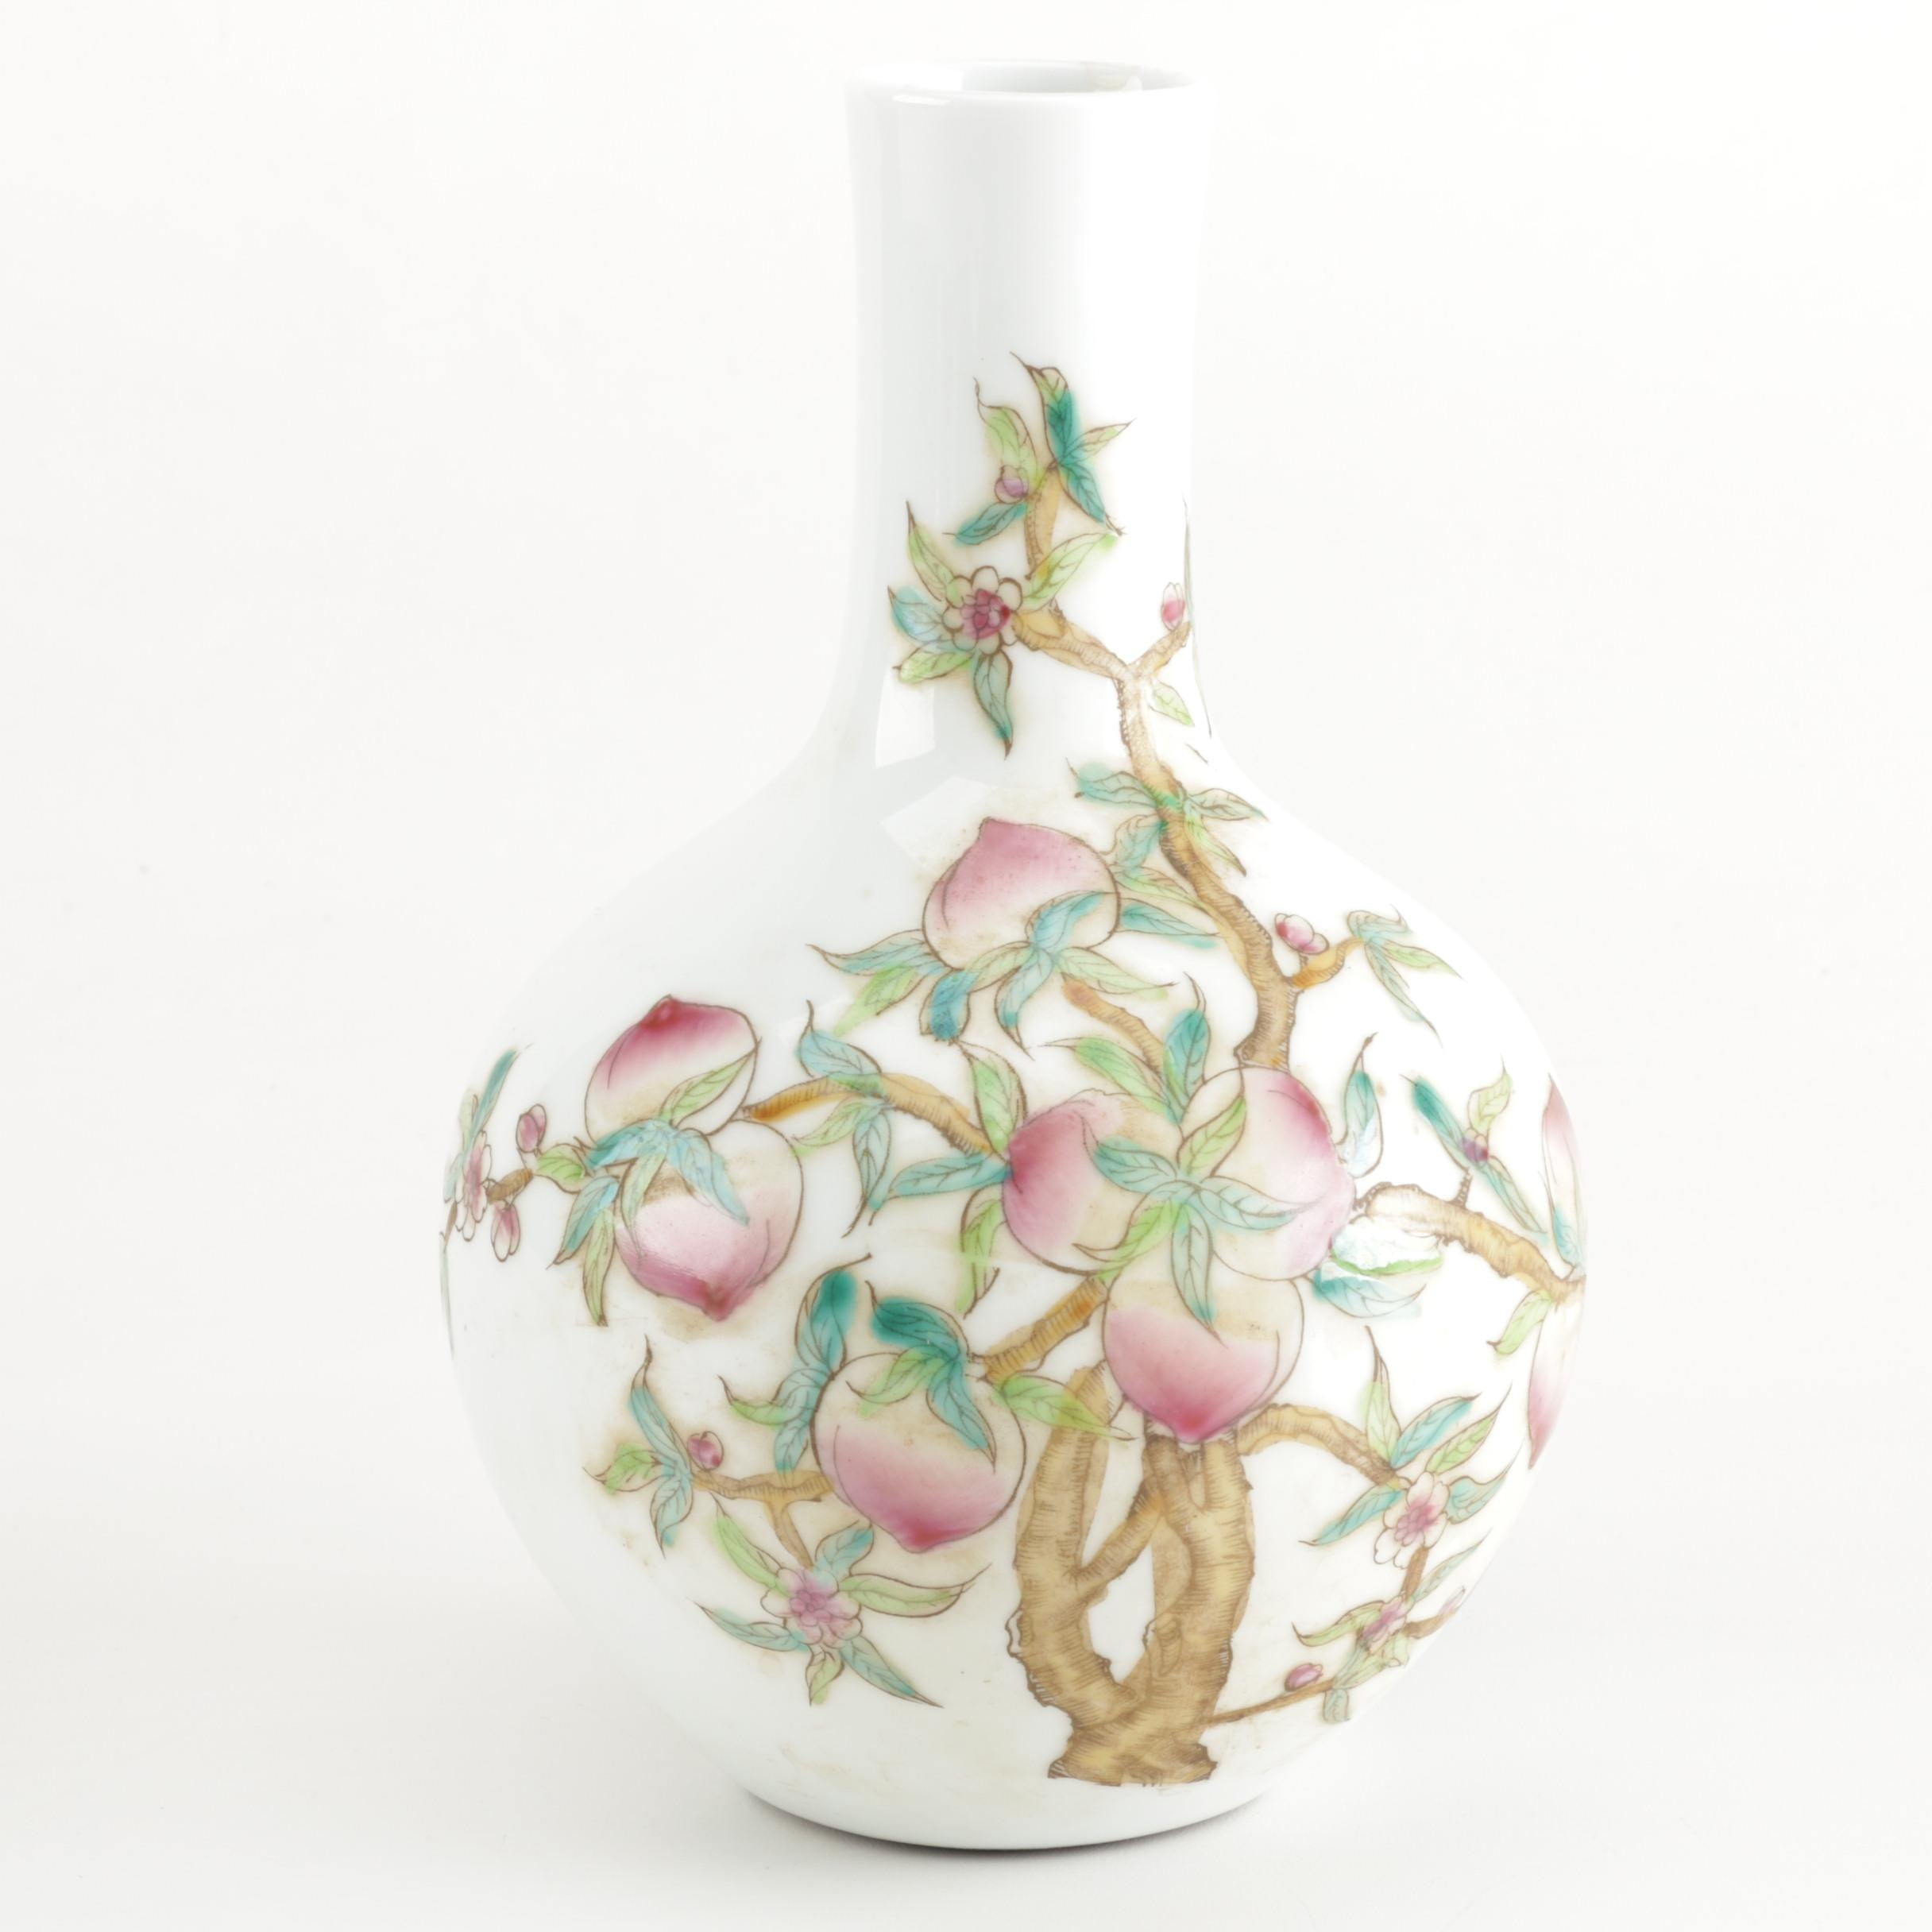 Chinese Porcelain Vase Decorated with a Peach Tree